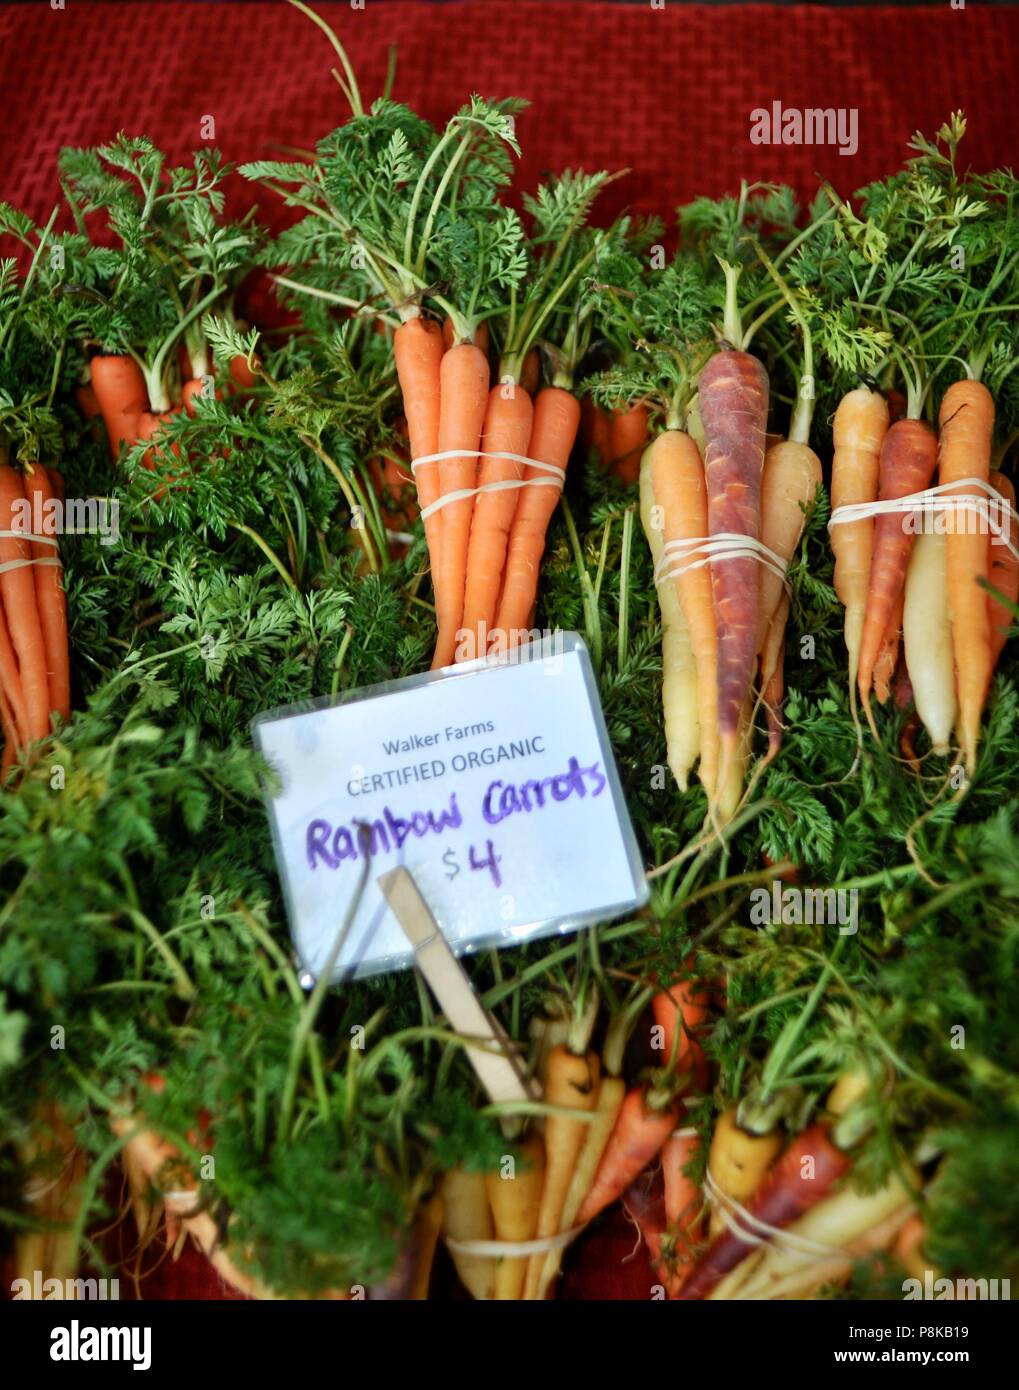 Tidy bundles of rainbow carrots (multicolored) at the Walker Farms farmstand for sale at farmers market in Savannah, Georgia, USA Stock Photo